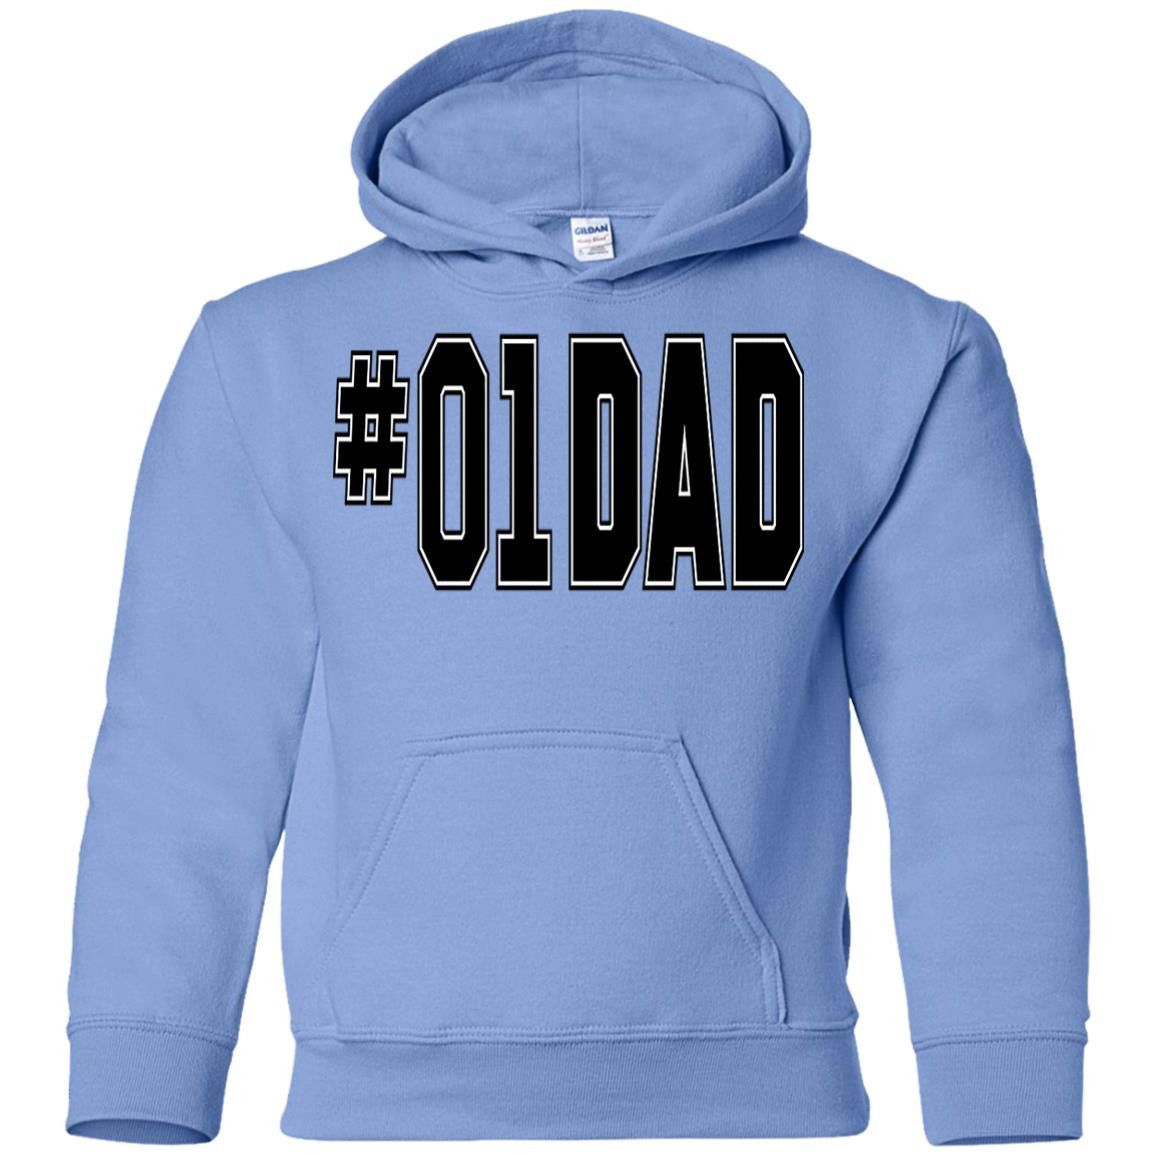 01 DAD 2 COLORS THE DUKES OF HAZZARD MENS G185B Gildan Youth Pullover Hoodie